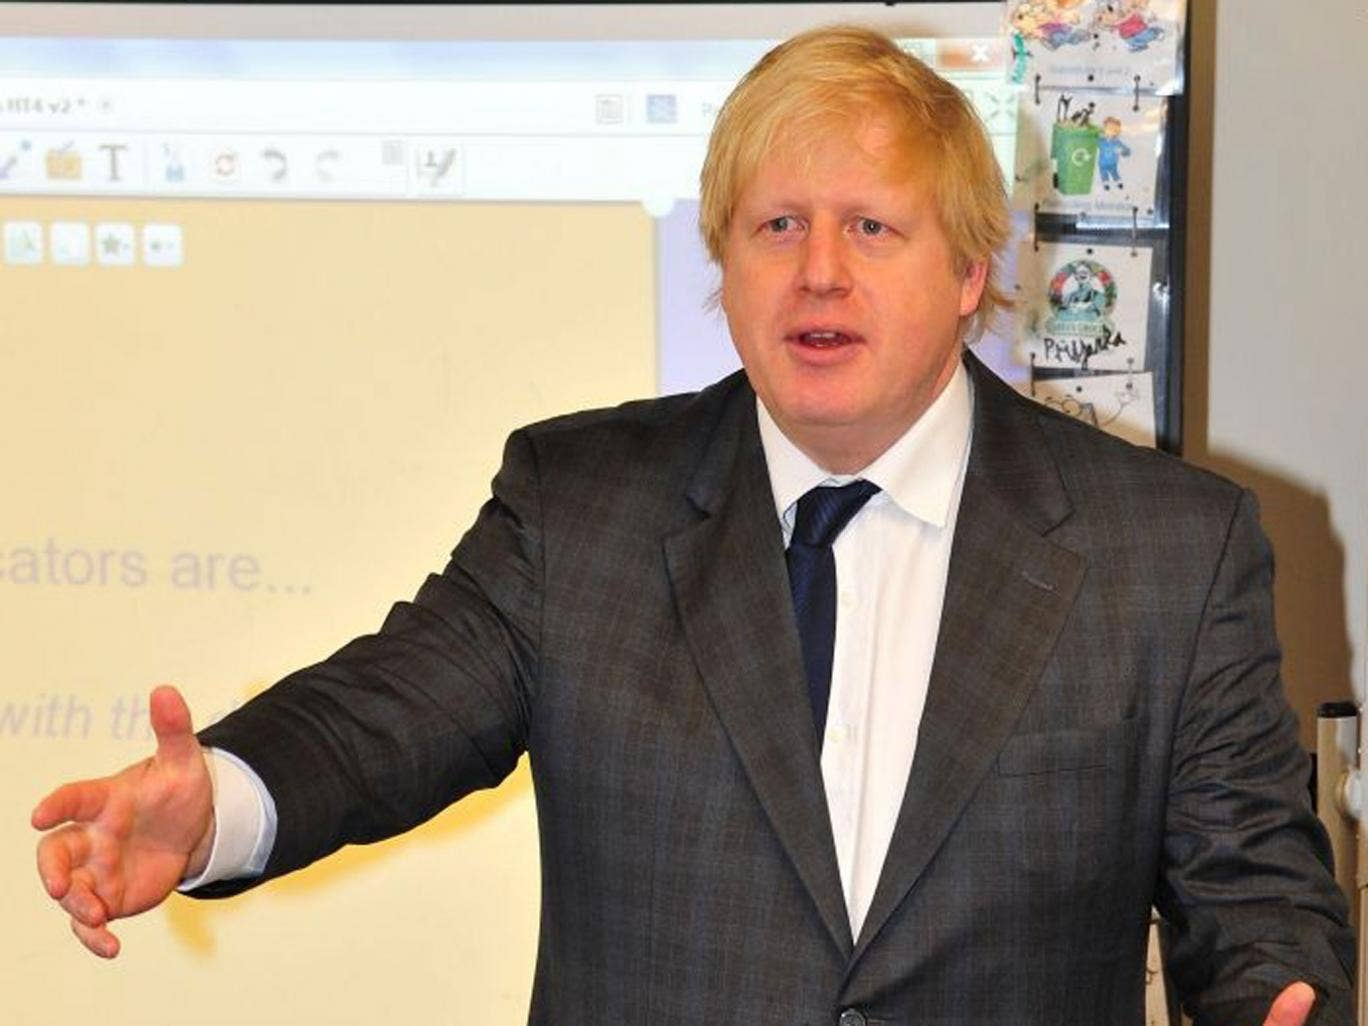 Boris Johnson (pictured) today stepped up the pressure on David Cameron over Europe